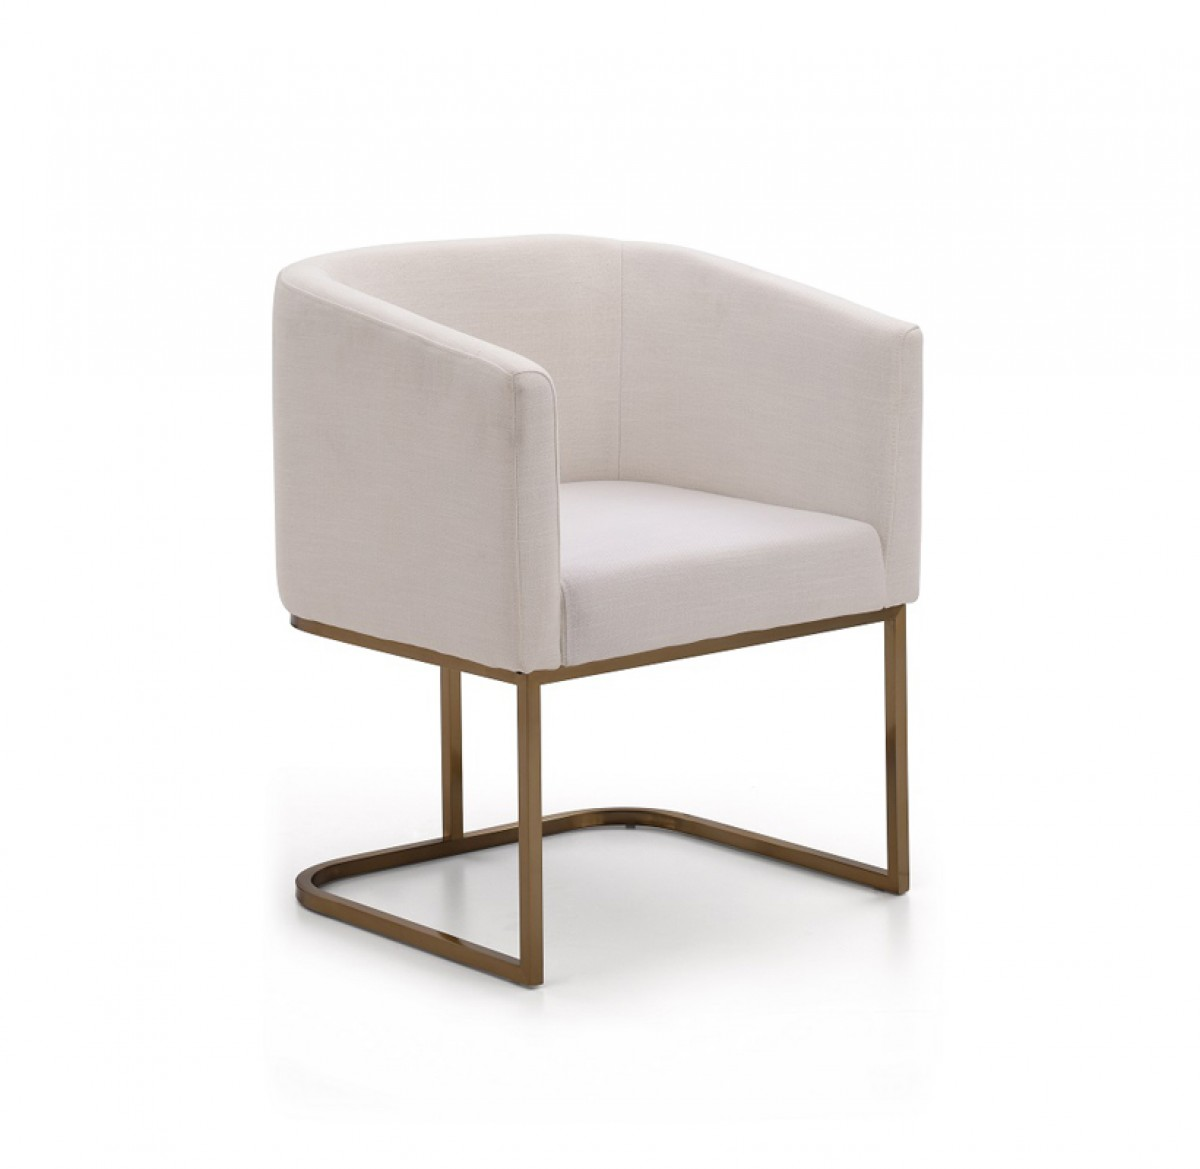 Modrest yukon modern white fabric and antique brass dining for Contemporary designer dining chairs